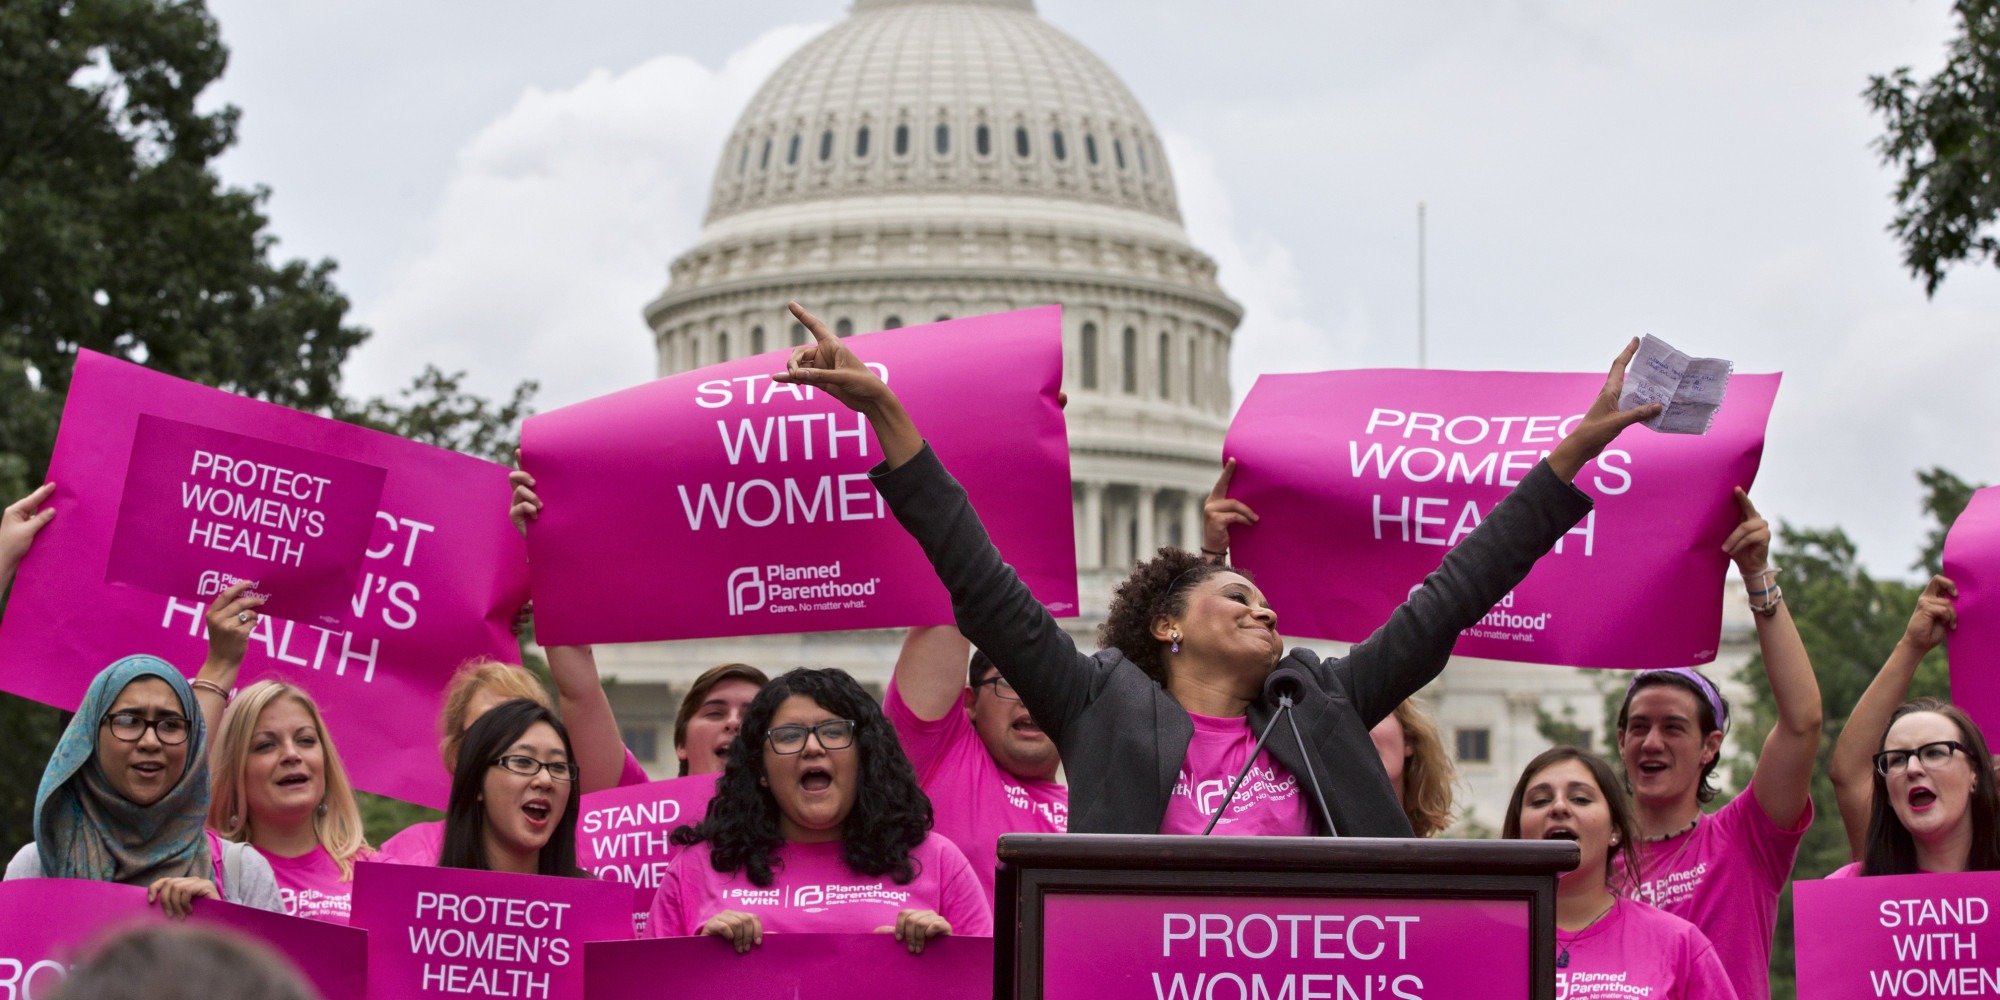 Trump allowing states to block some Planned Parenthood money